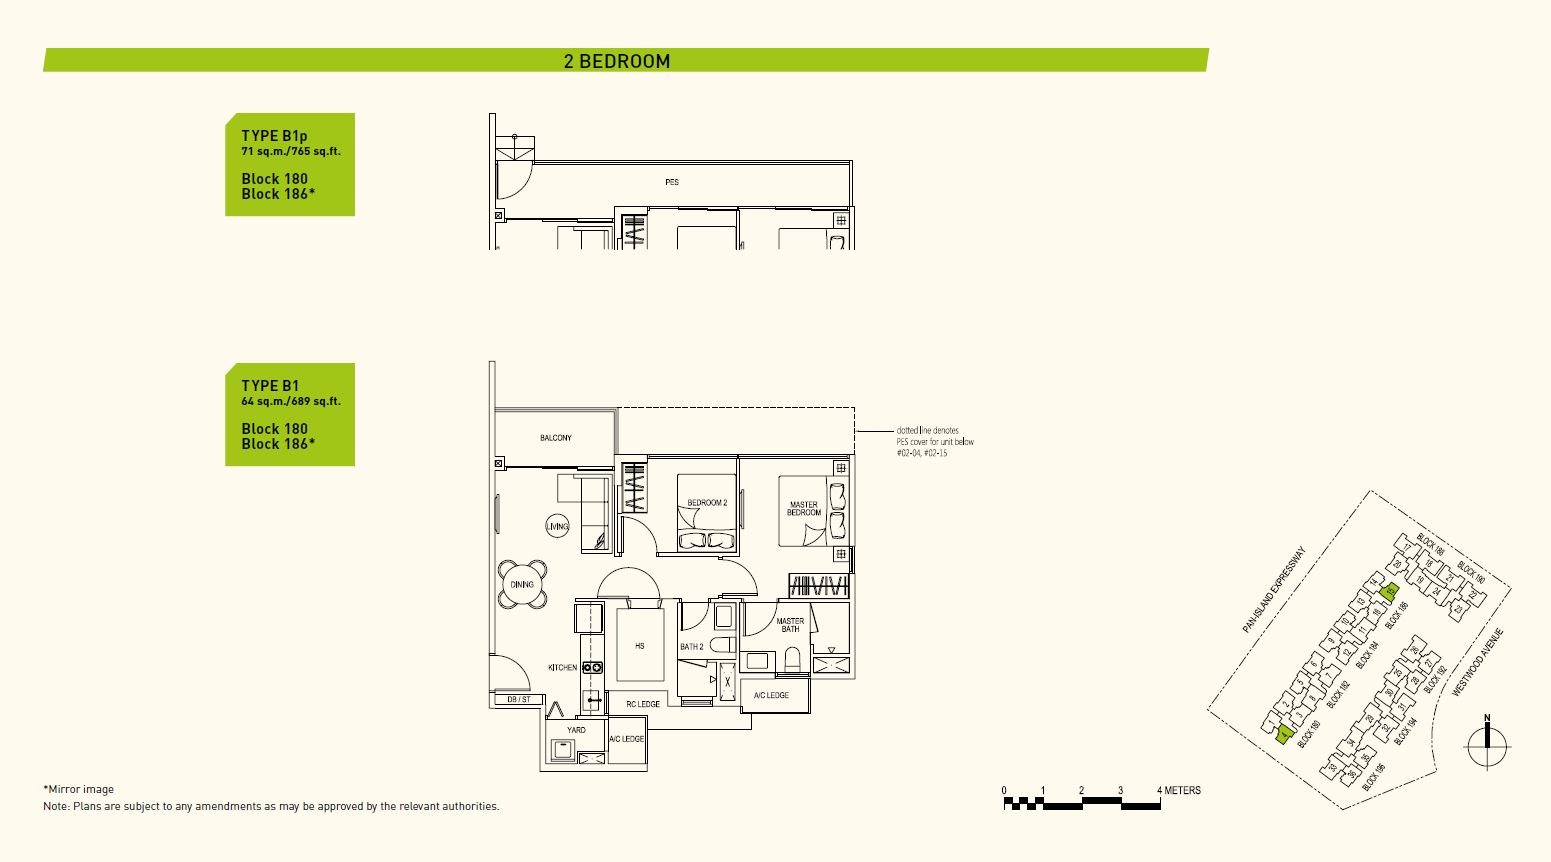 2BR B1p B1_Westwood Residences_Terence Low_96411910